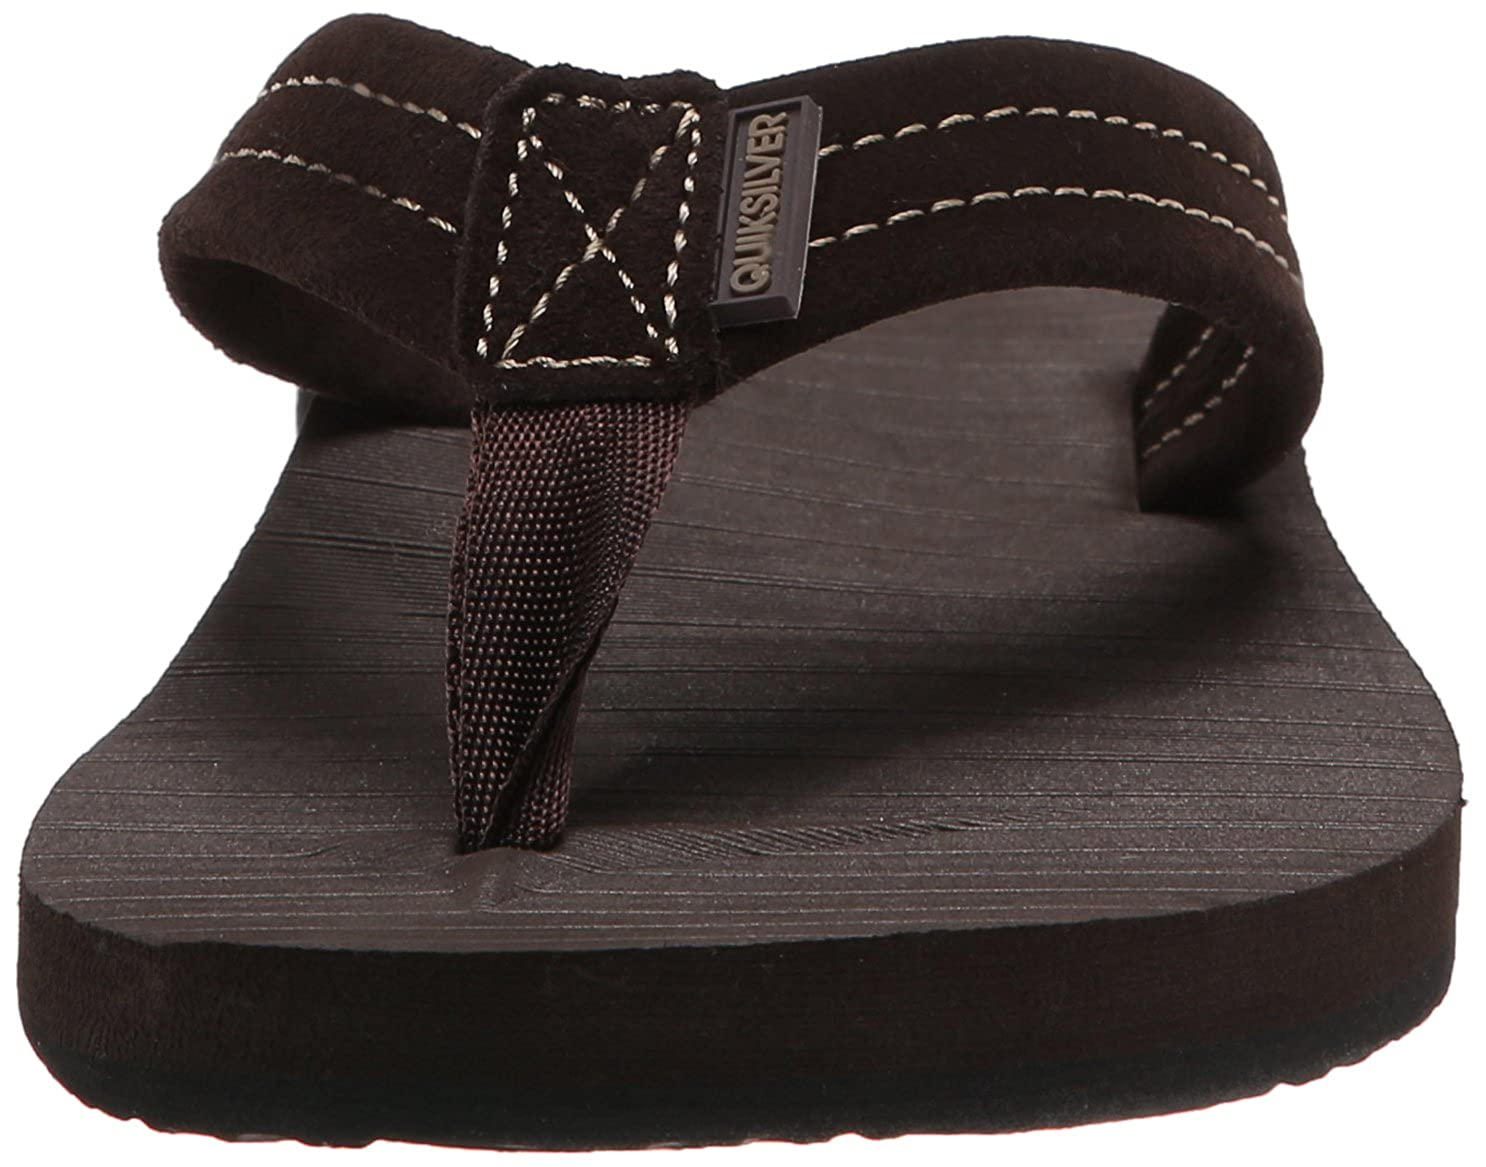 8ff7cc19ea22 Amazon.com  Quiksilver Men s Carver Suede 3-Point Flip-Flop  Shoes